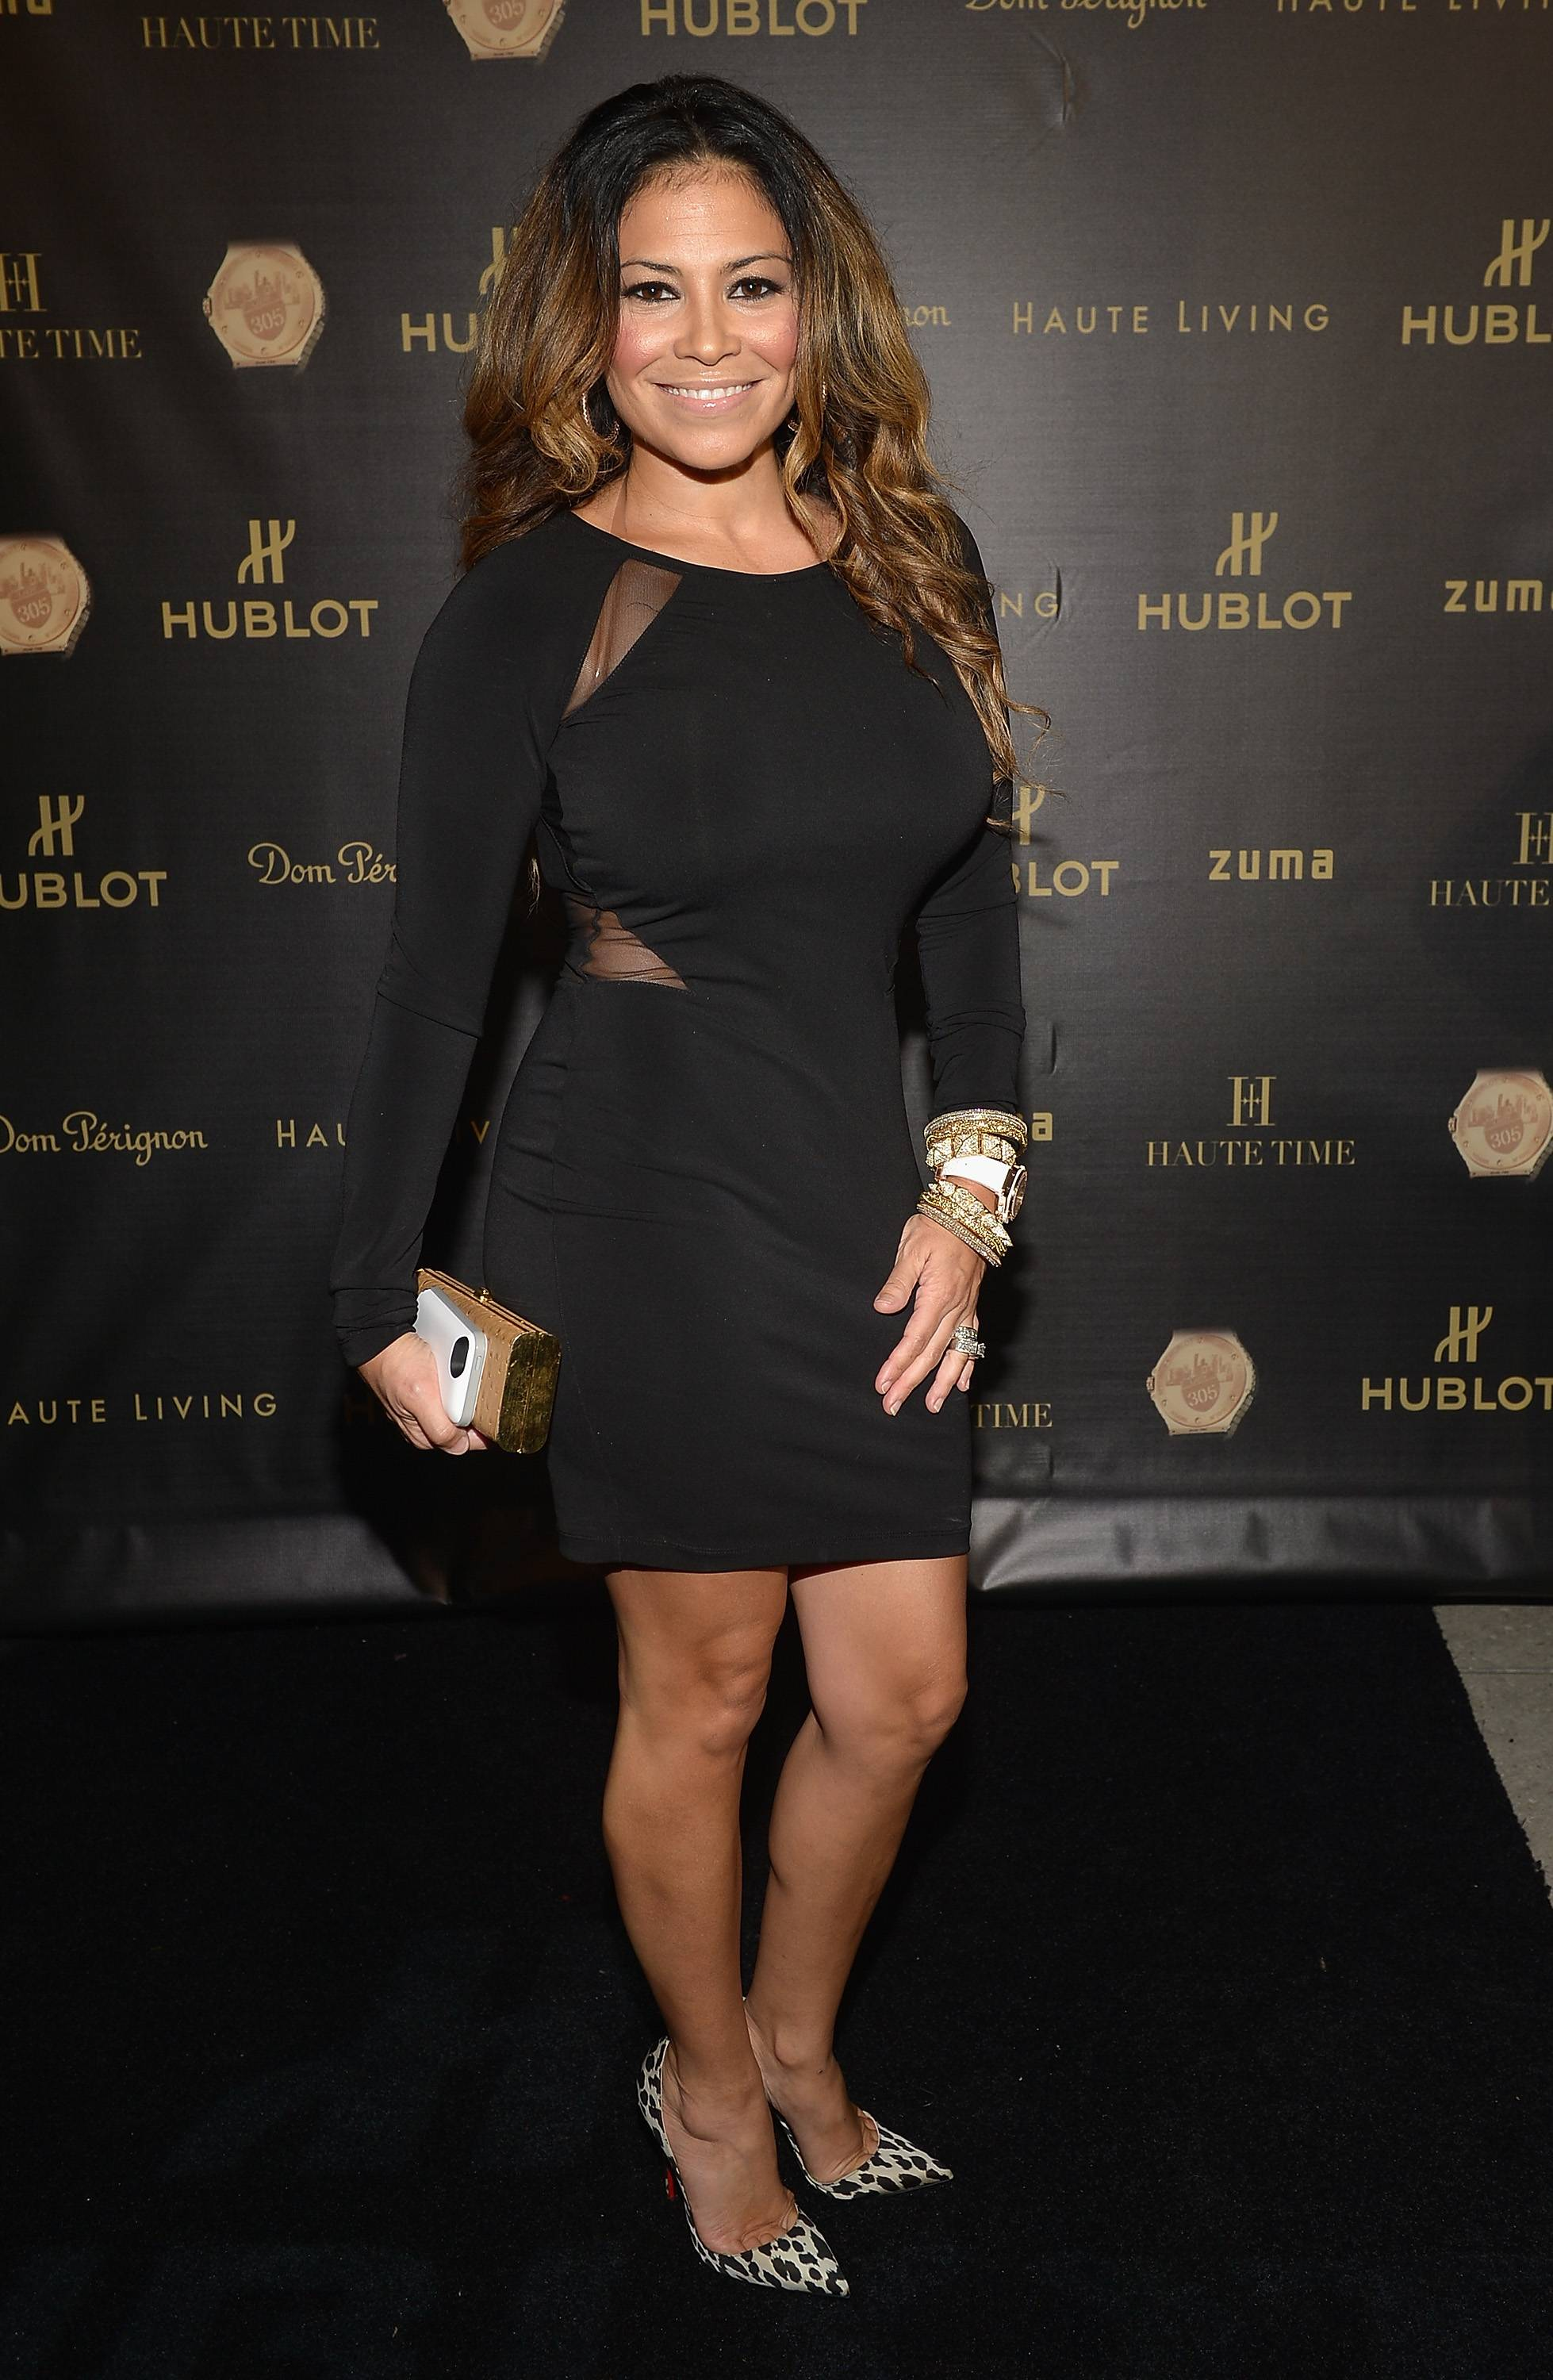 Shannon Allen attends the Haute Living